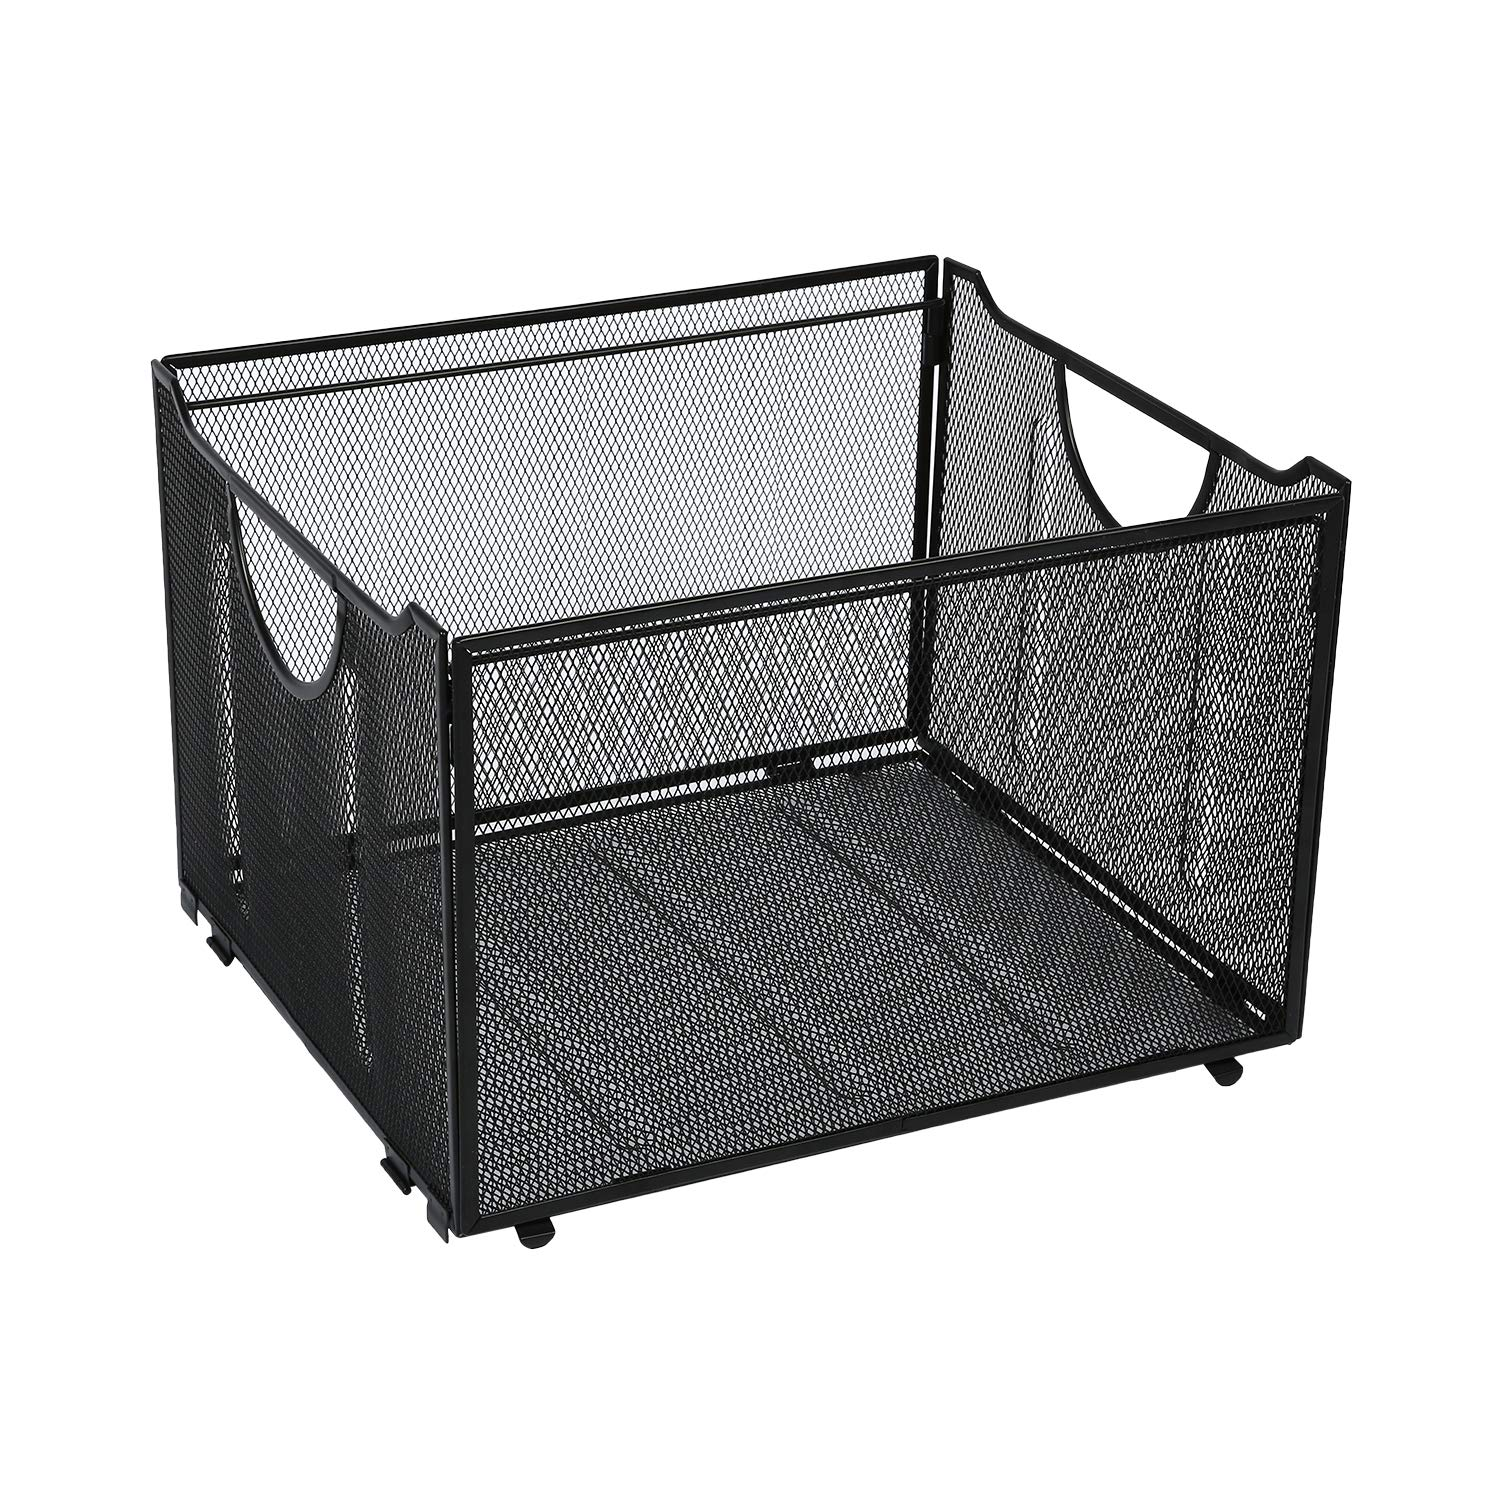 Office Metal Mesh File Organizer with Handle Letter Storage Crate Folder Holder Box for Home Desk Black by AI VINNY